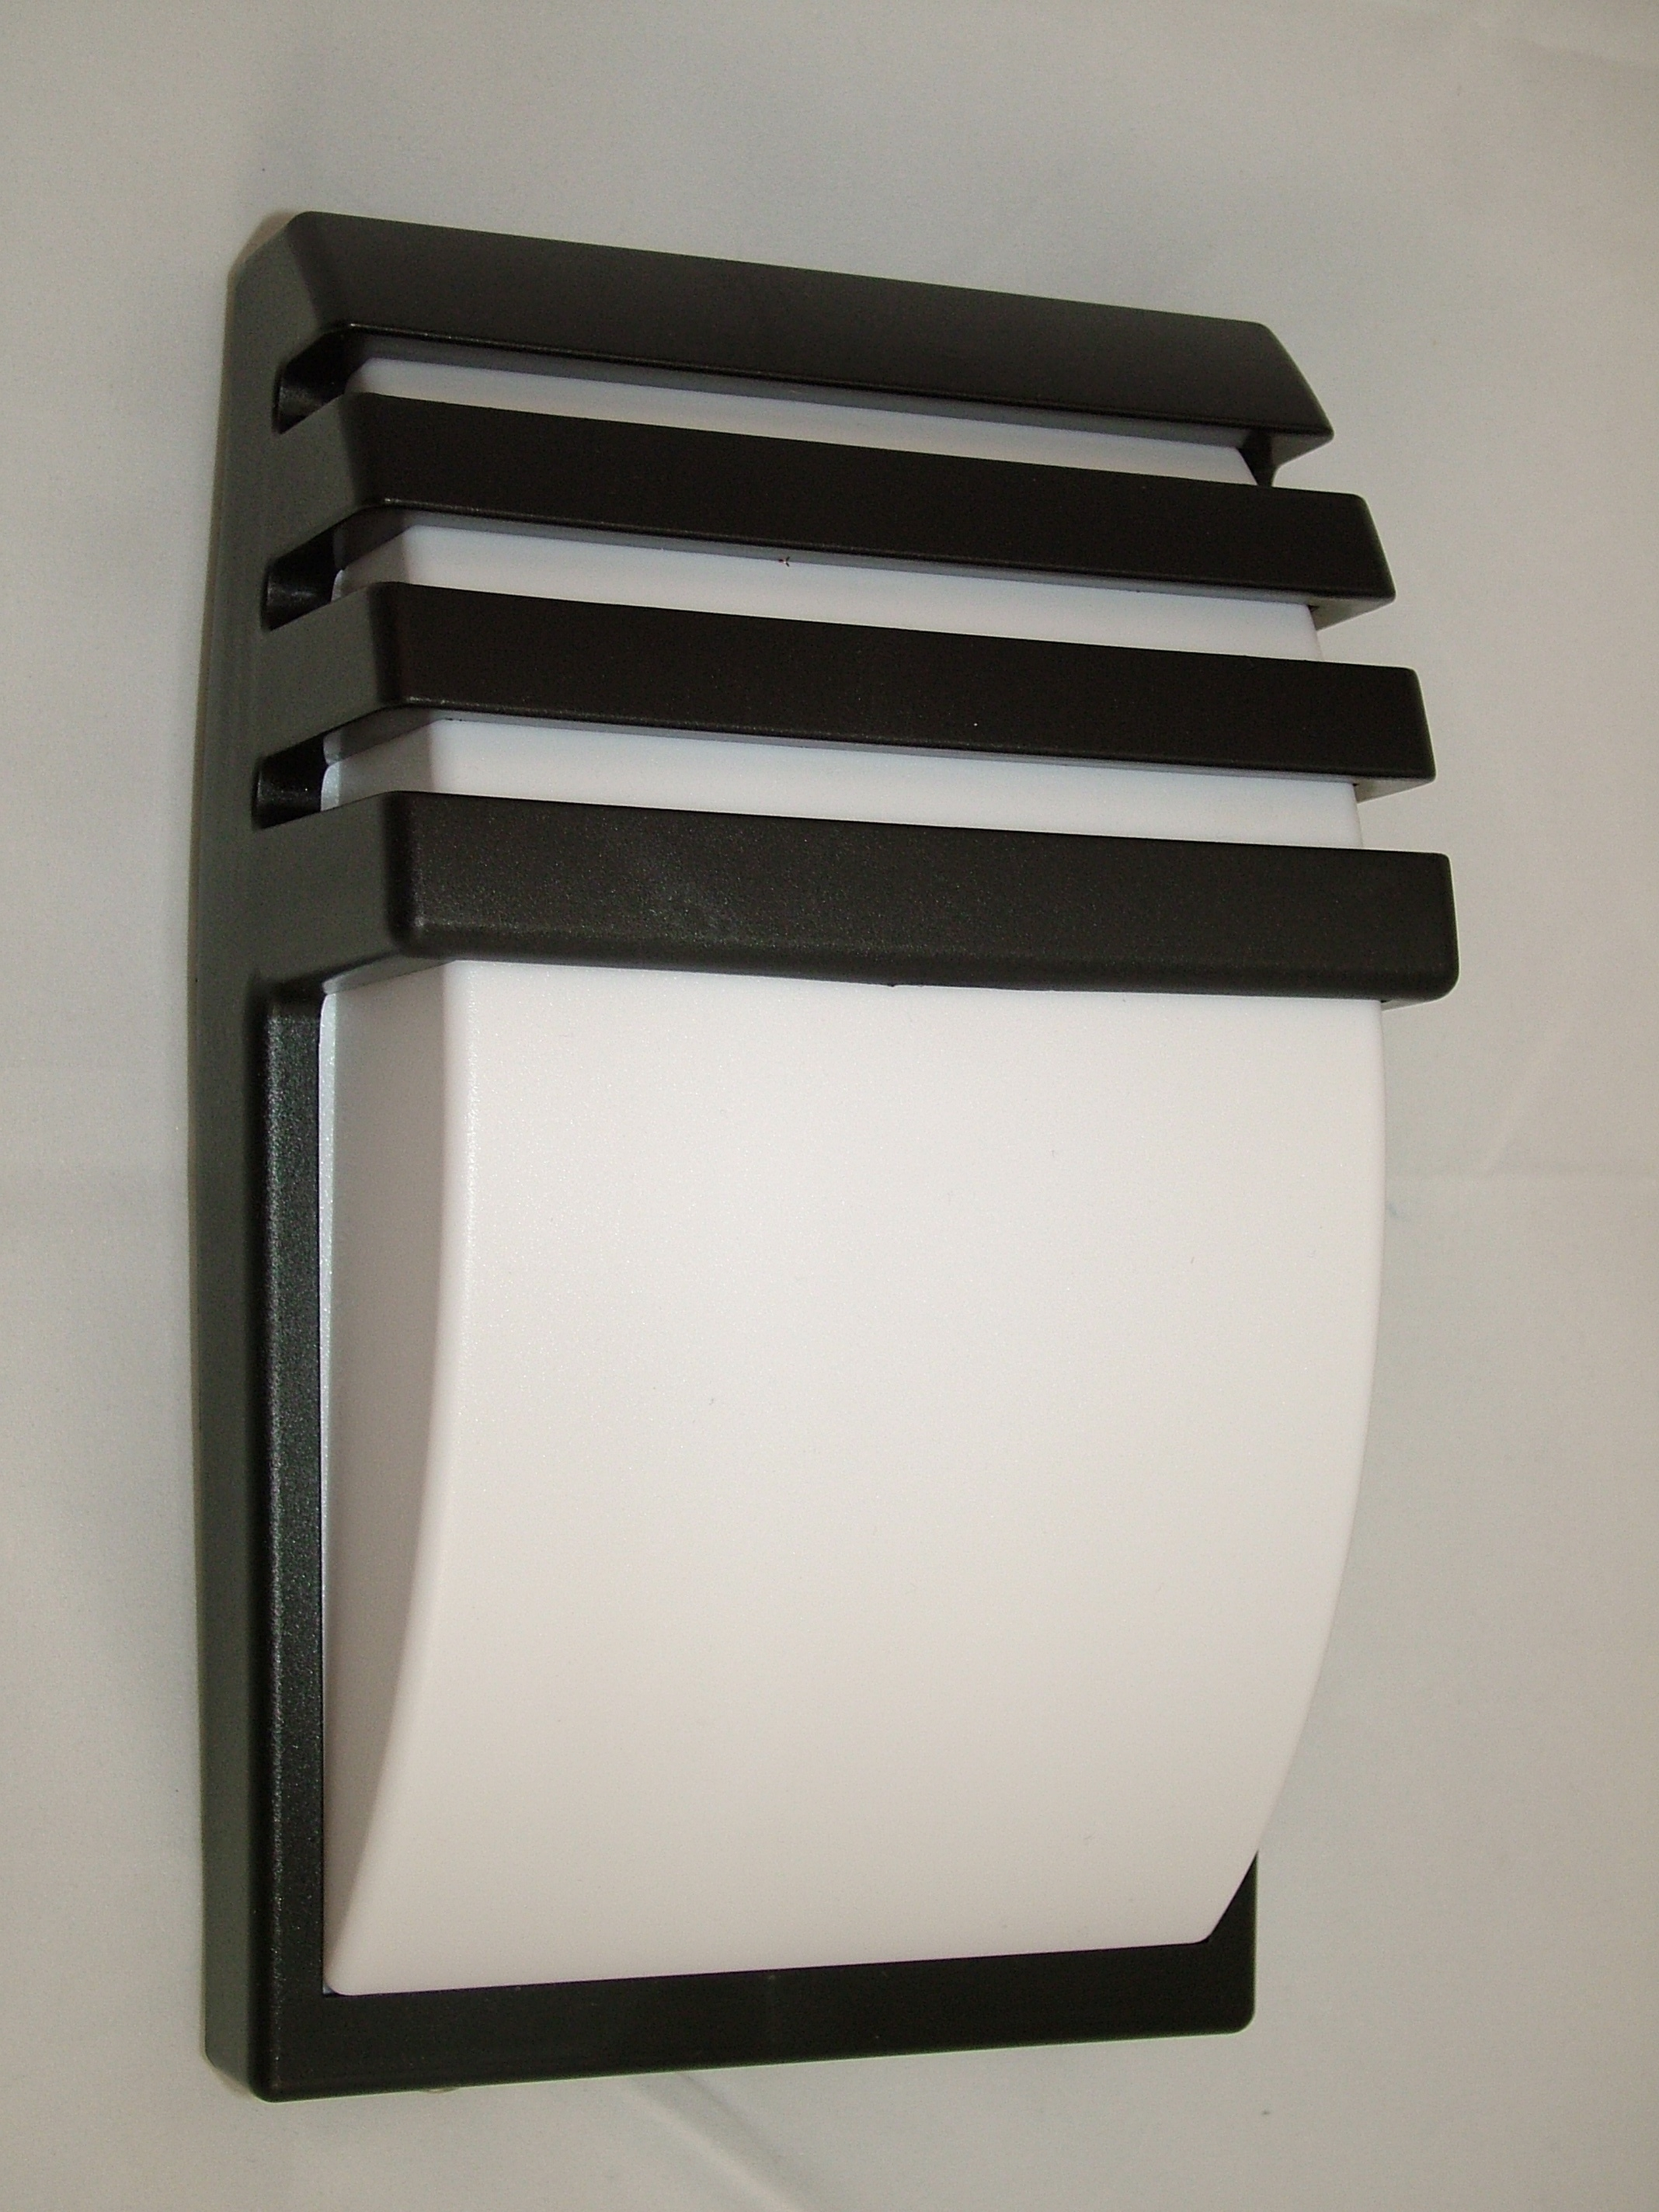 Large Outdoor Modern Wall Mounted Lighting Fixtures With Black Pertaining To Outdoor Wall Sconce Led Lights (#5 of 15)